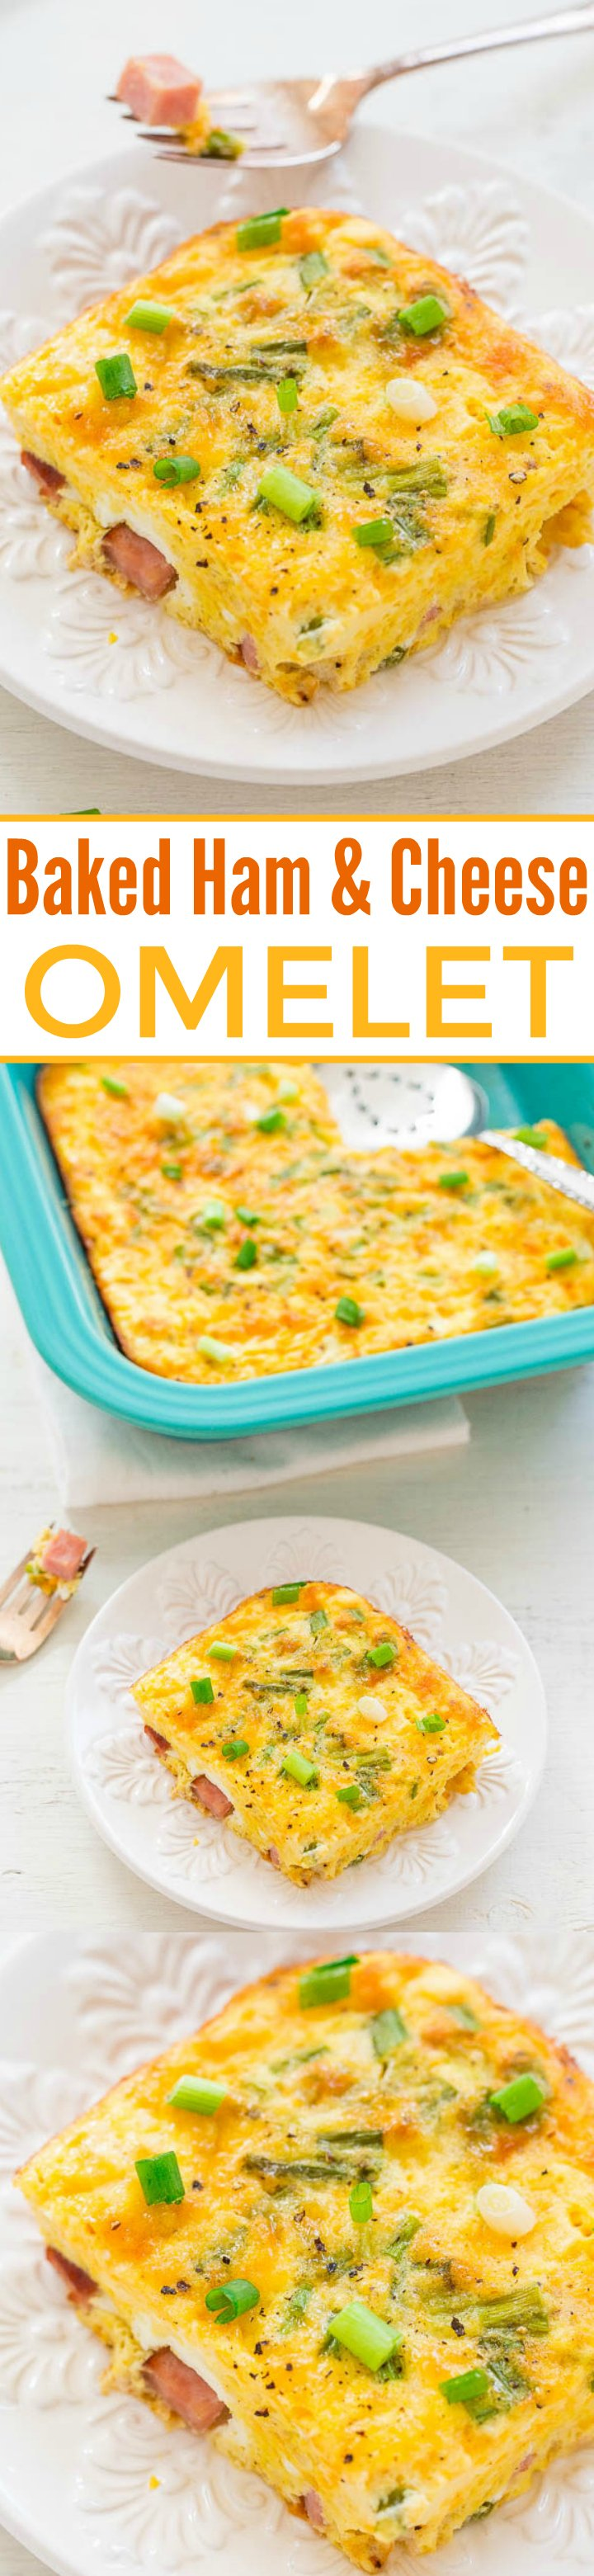 Baked Ham and Cheese Omelet - No more babysitting omelets at the stove!! Pop this into the oven and go sit down and relax! EASY, delish, and perfect for leisurely weekends, holiday brunches, or breakfast-for-dinner!!